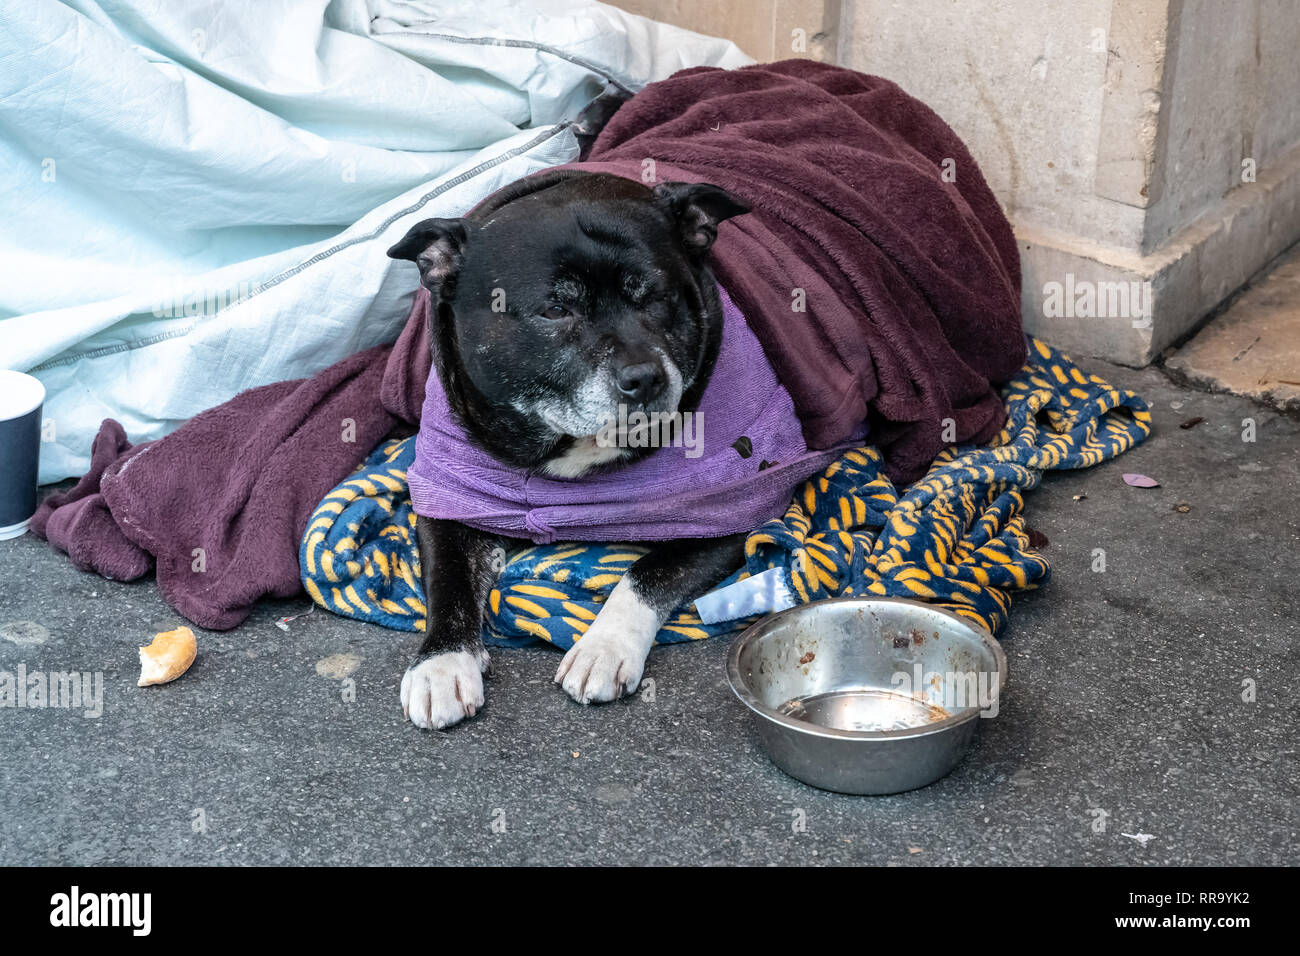 A homeless dog lying alone and depressed on the street feeling anxious and lonely in sleeping bag and waiting for food. The concept of homelessness. - Stock Image